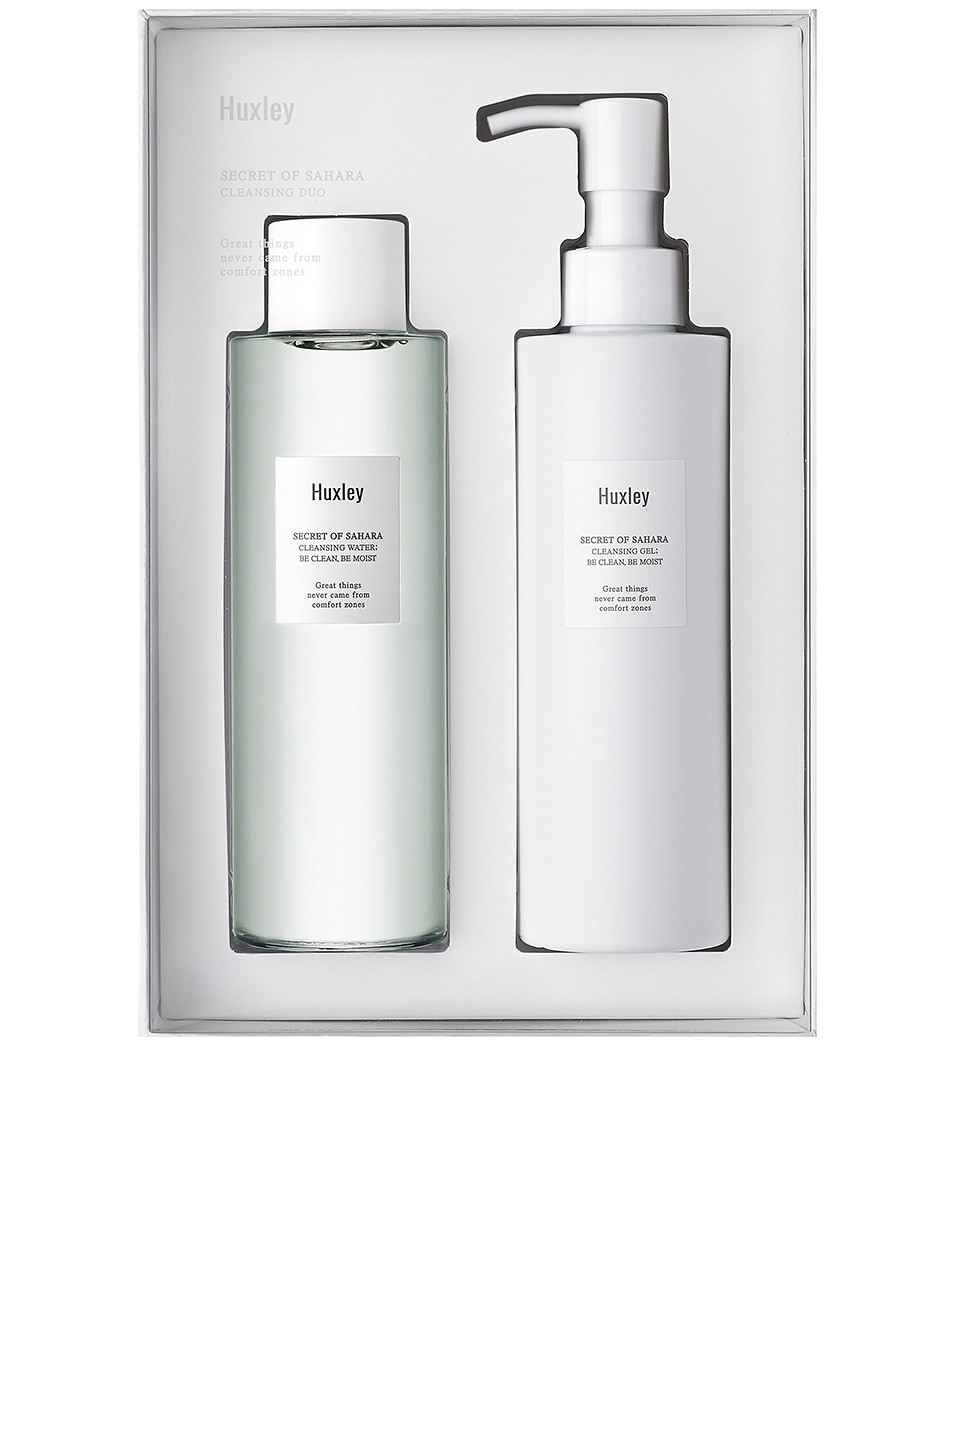 Huxley NETTOYANT CLEANSING DUO